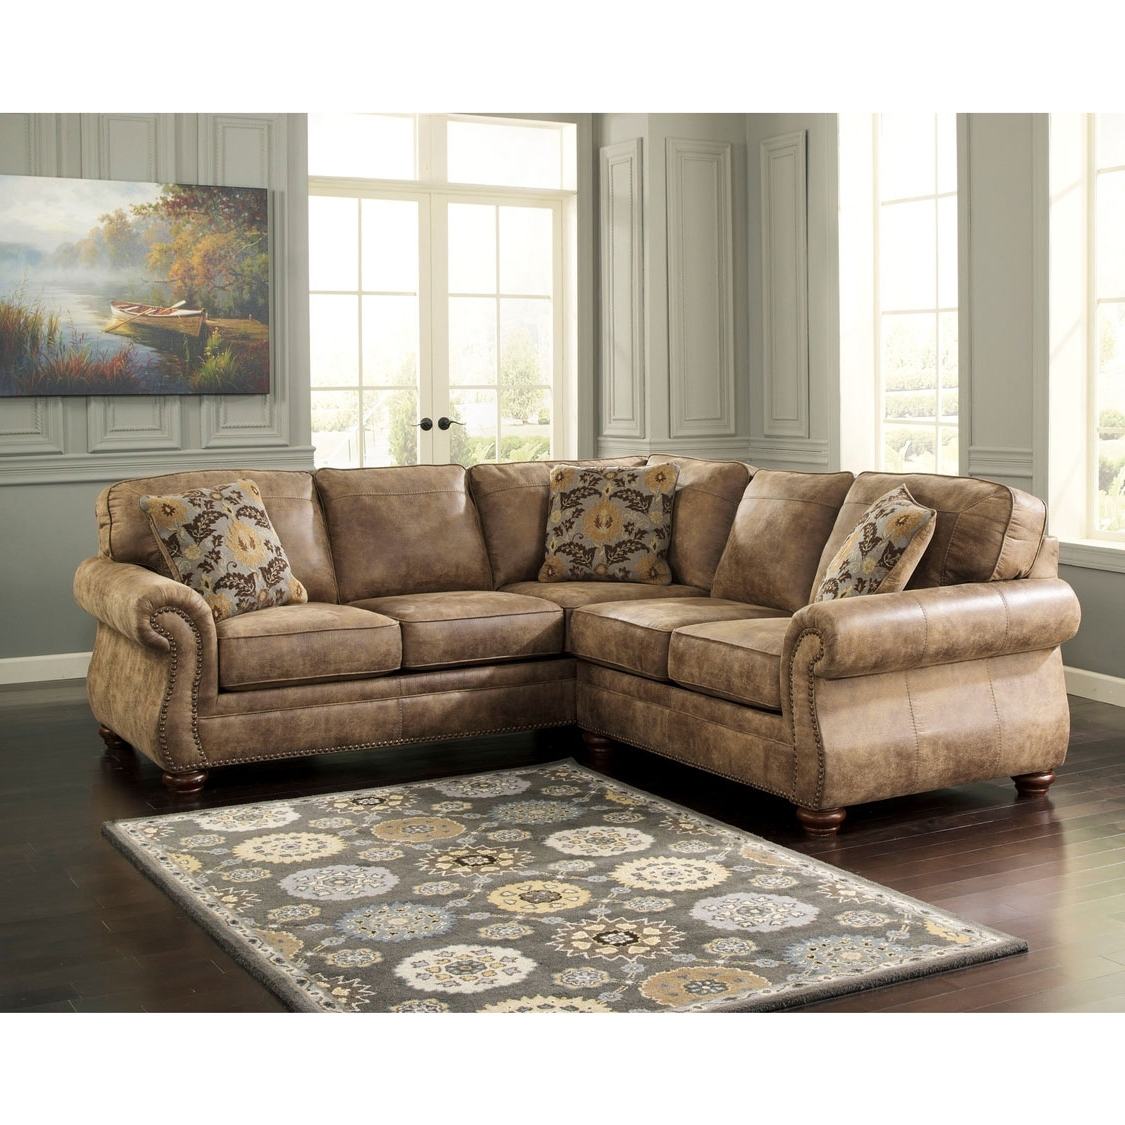 2018 Tucson Sectional Sofas Throughout Sectional Sofa (View 4 of 20)